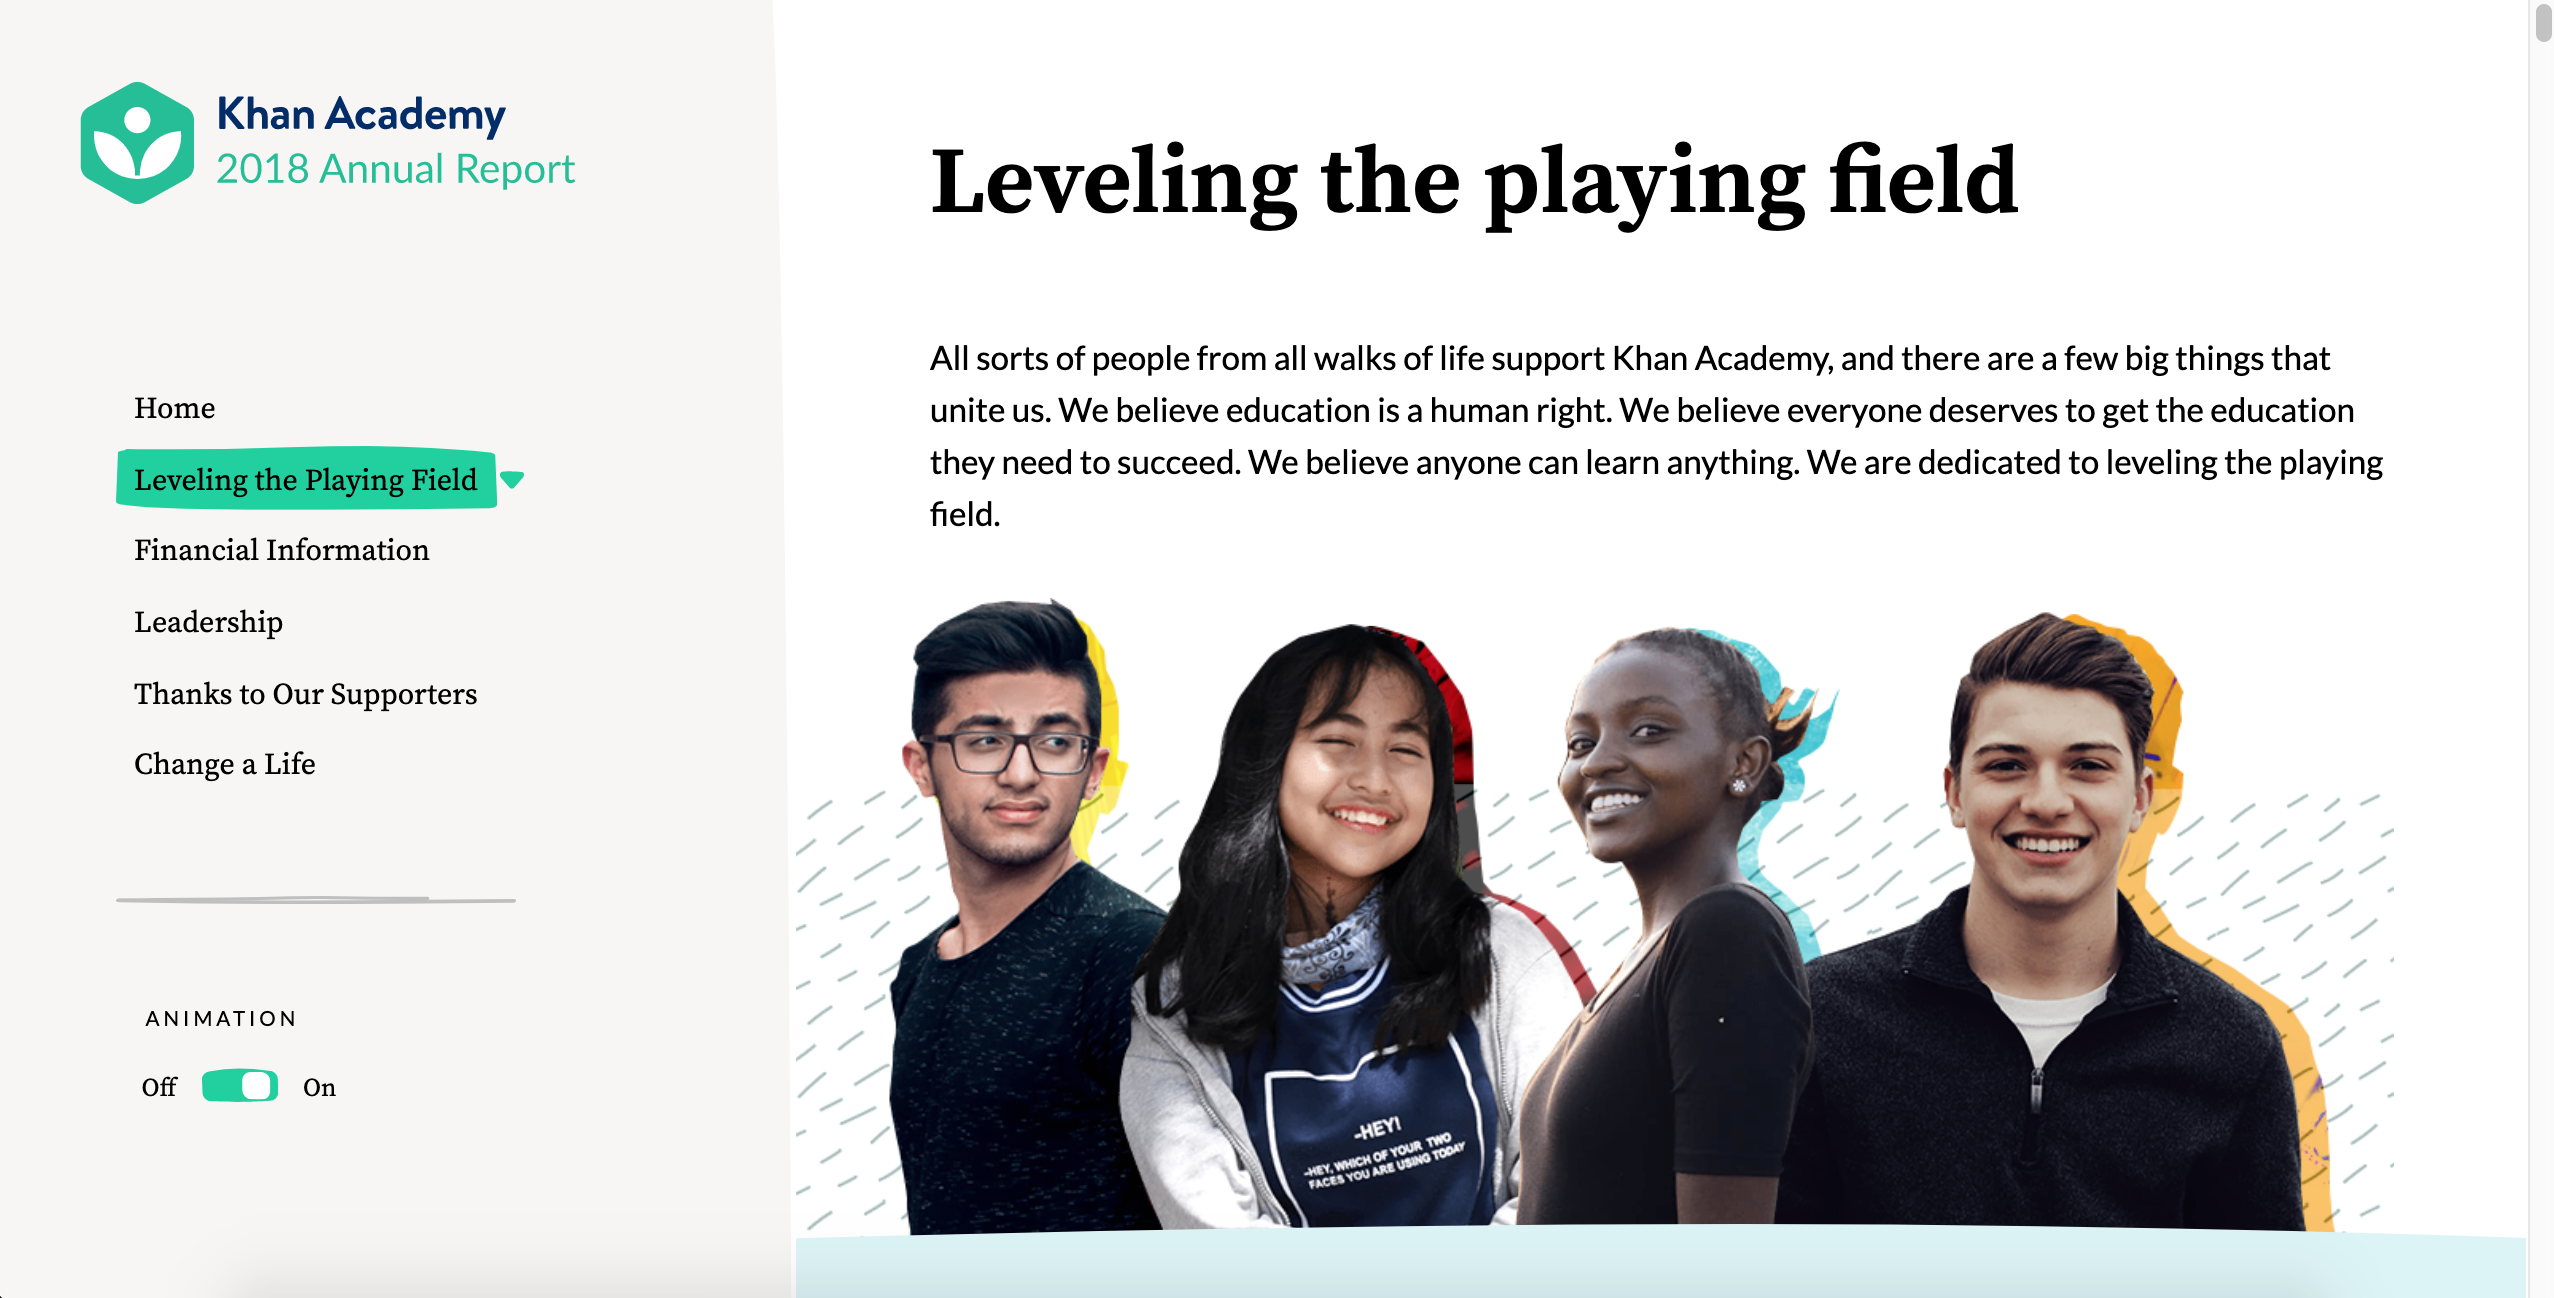 Khan Academy Annual Report screenshot of the 'Leveling the Playing Field' page.